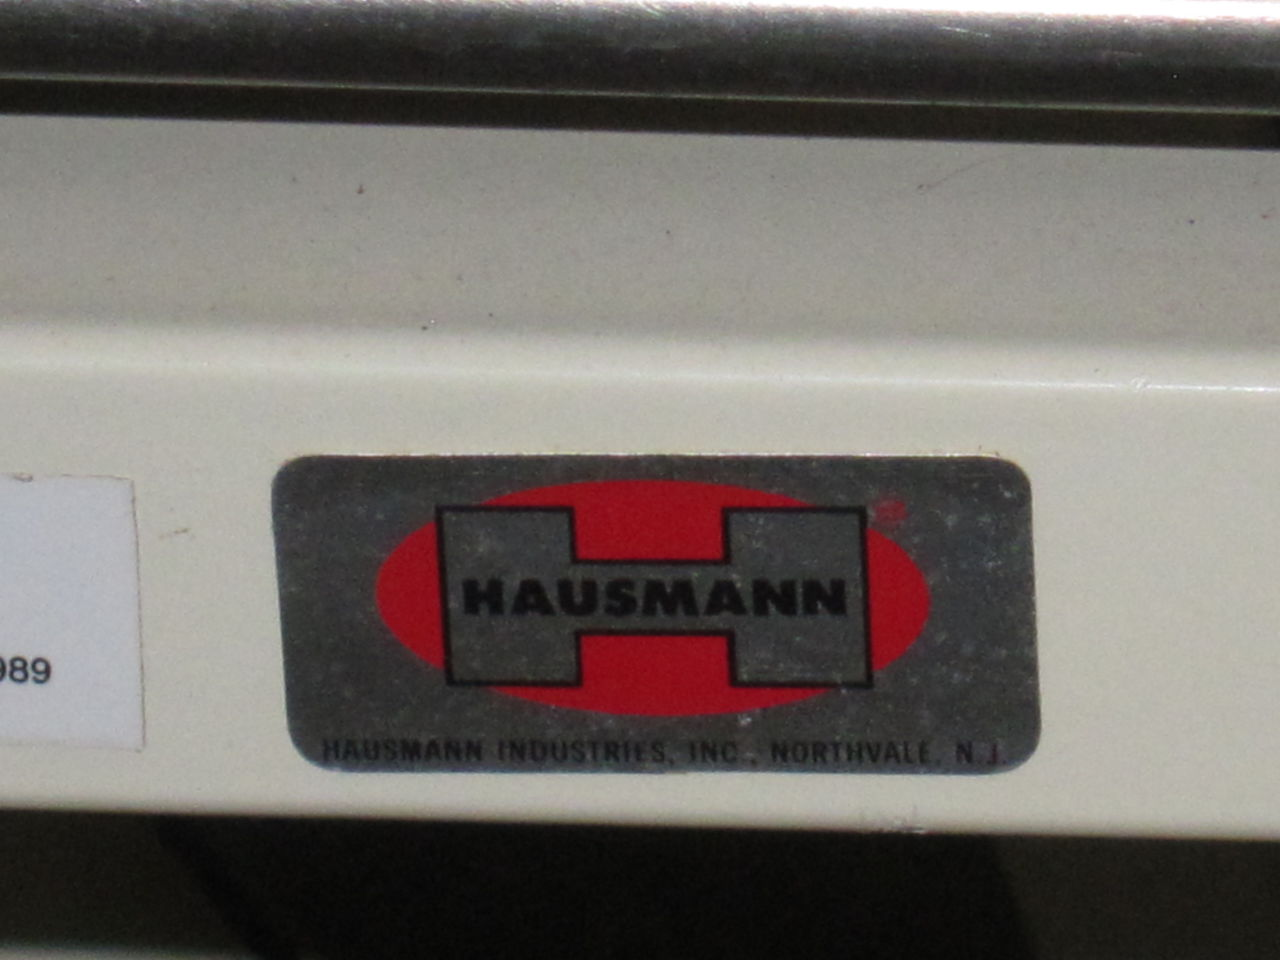 HAUSMANN INDUSTRIES Patient Bed Stretcher